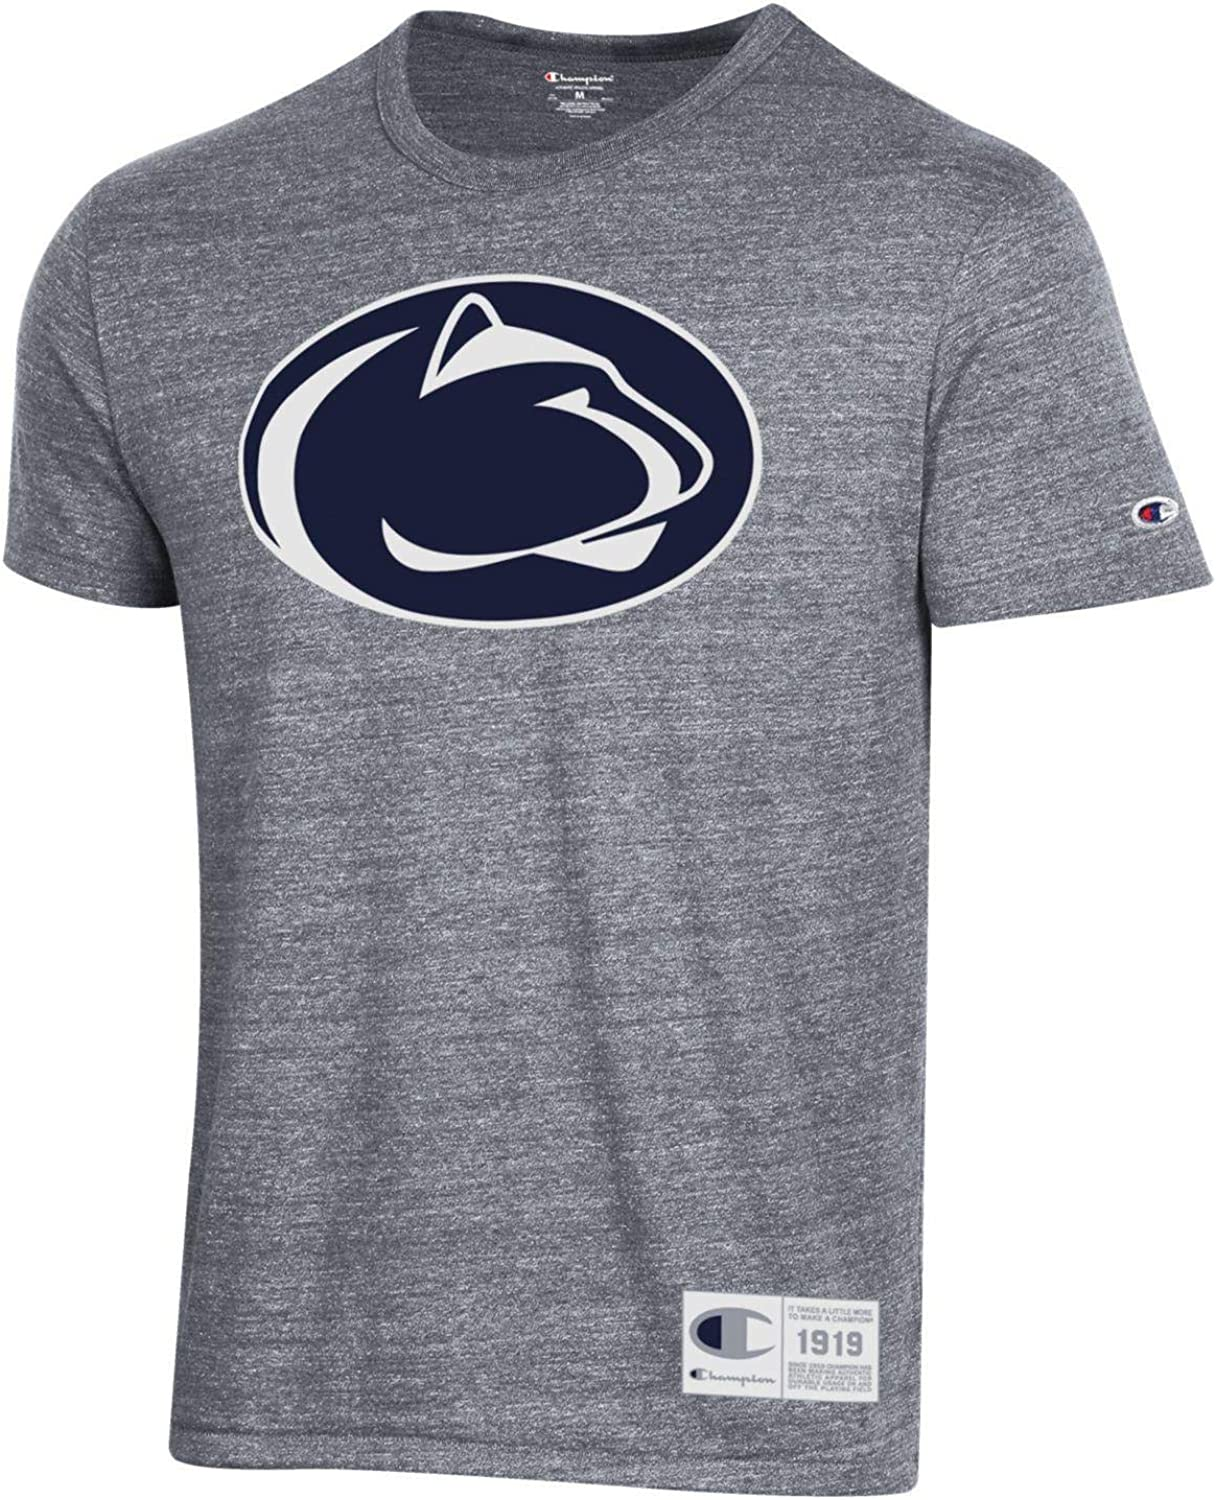 CHAMPION NCAA Mens Retro Ultimate Triblend T-Shirt with Old School Logo